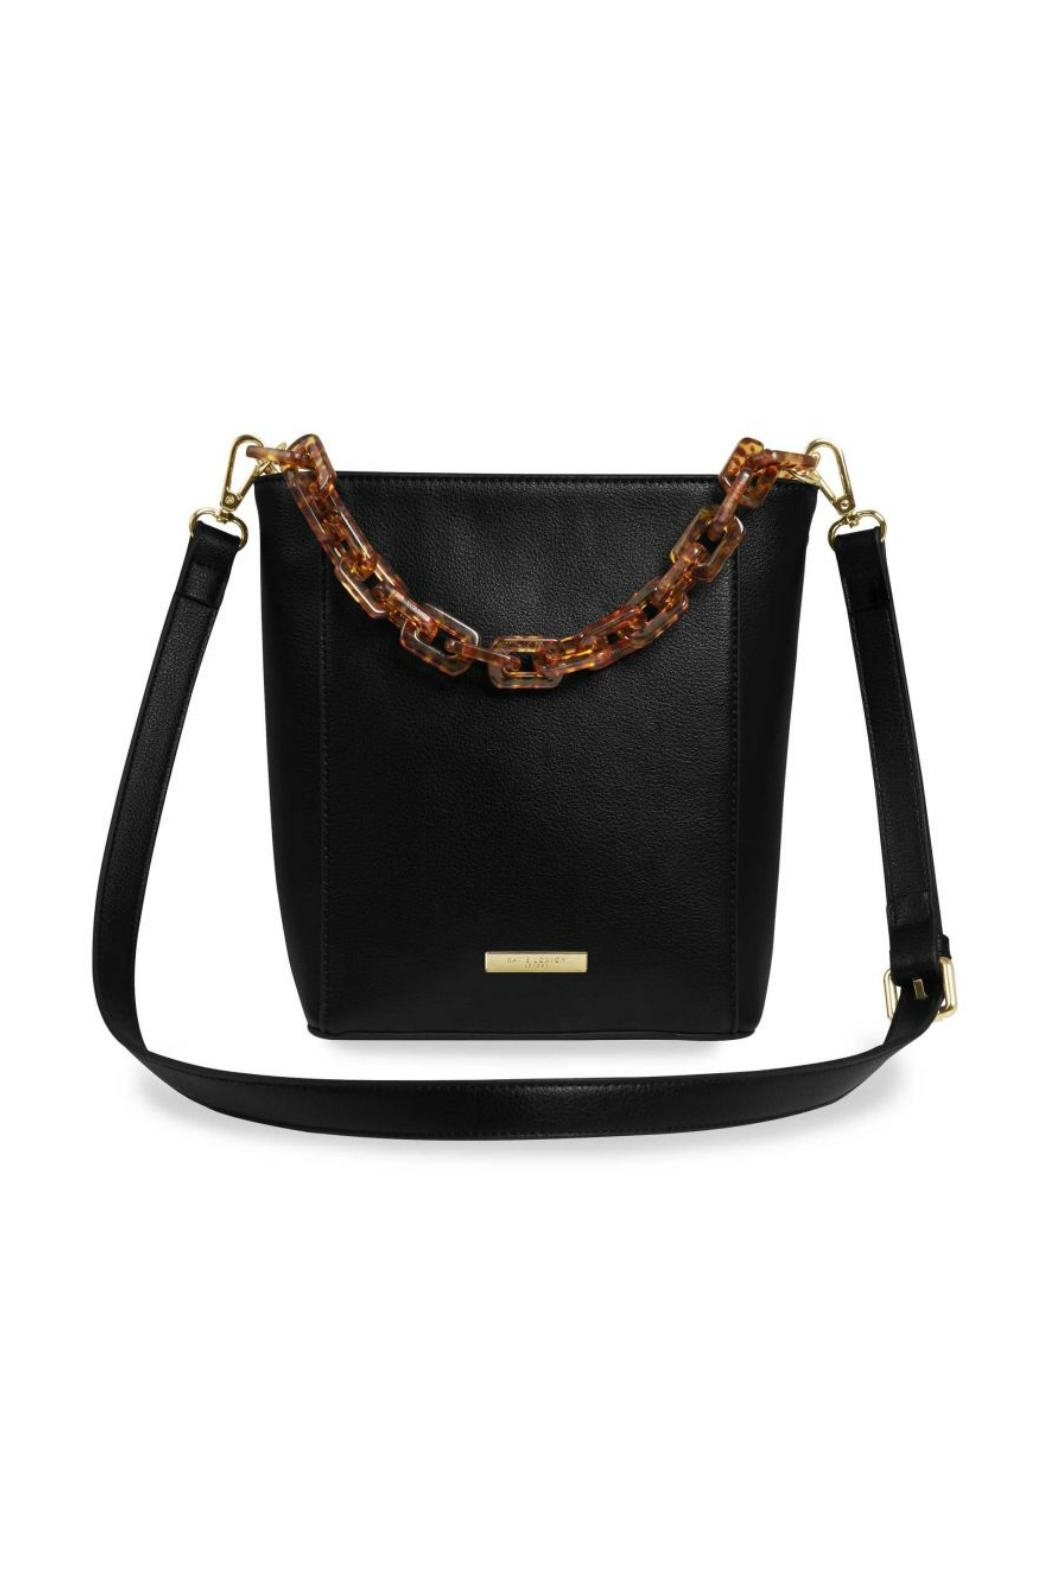 Katie Loxton Tortoiseshell Strap Bag - Front Cropped Image